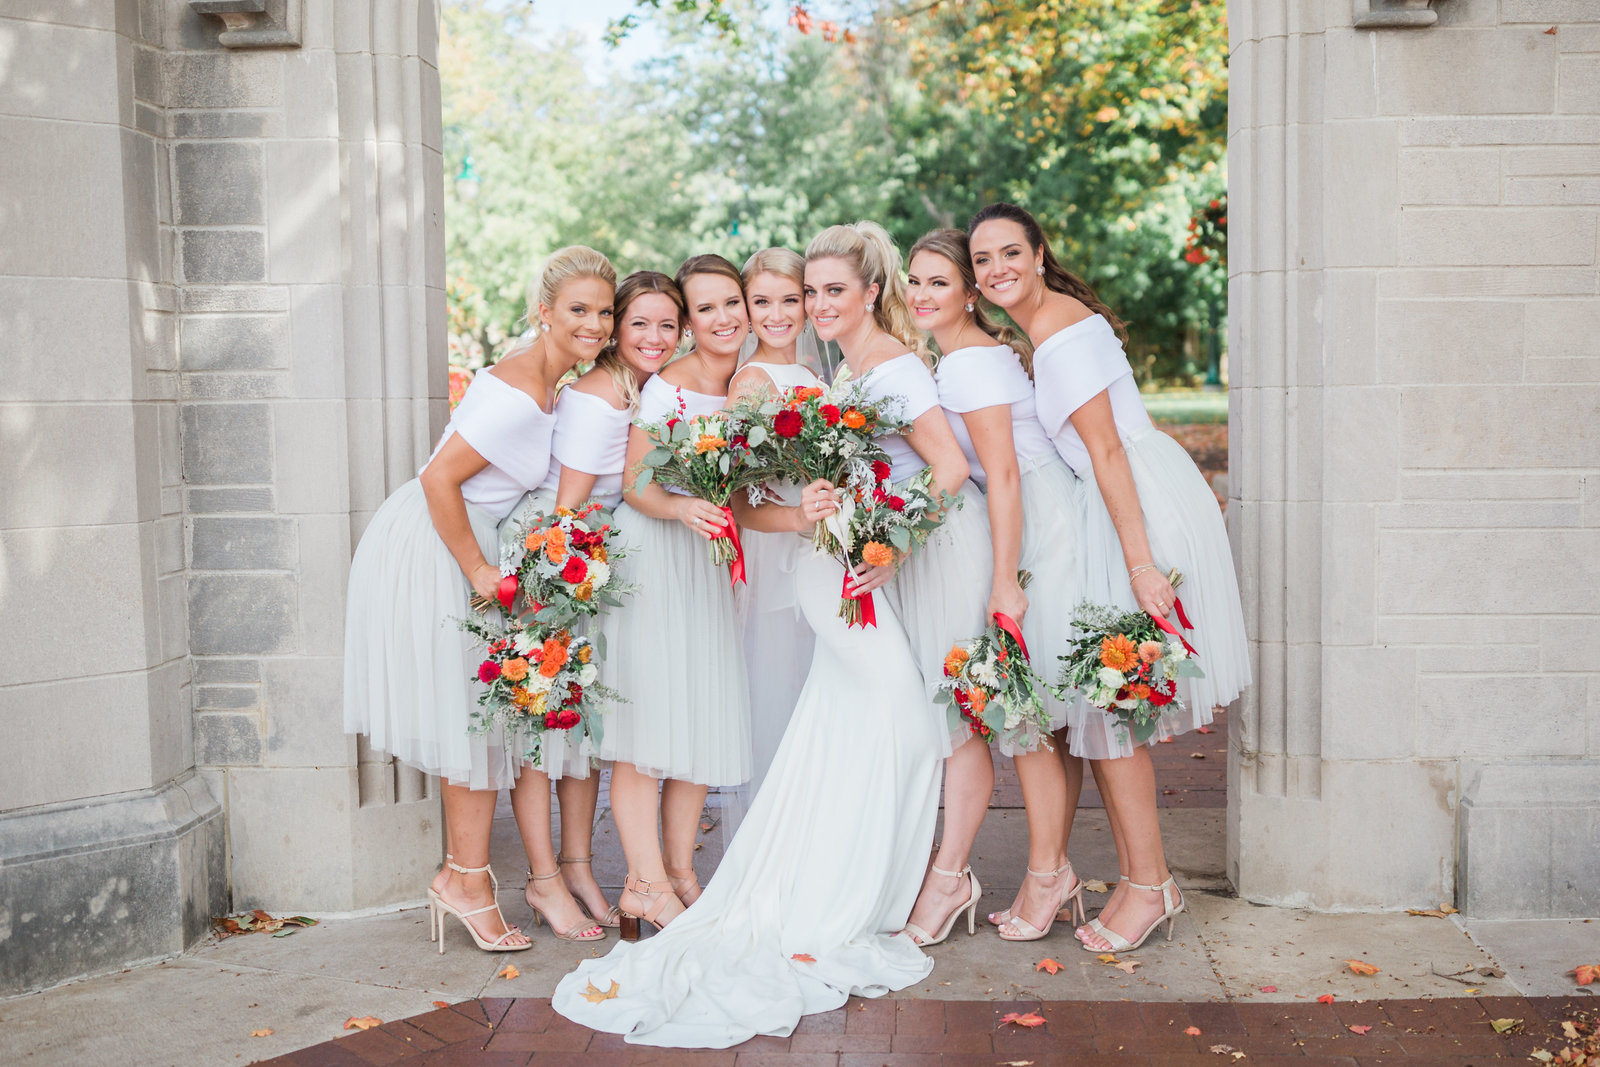 teresa schmidt photography-100021